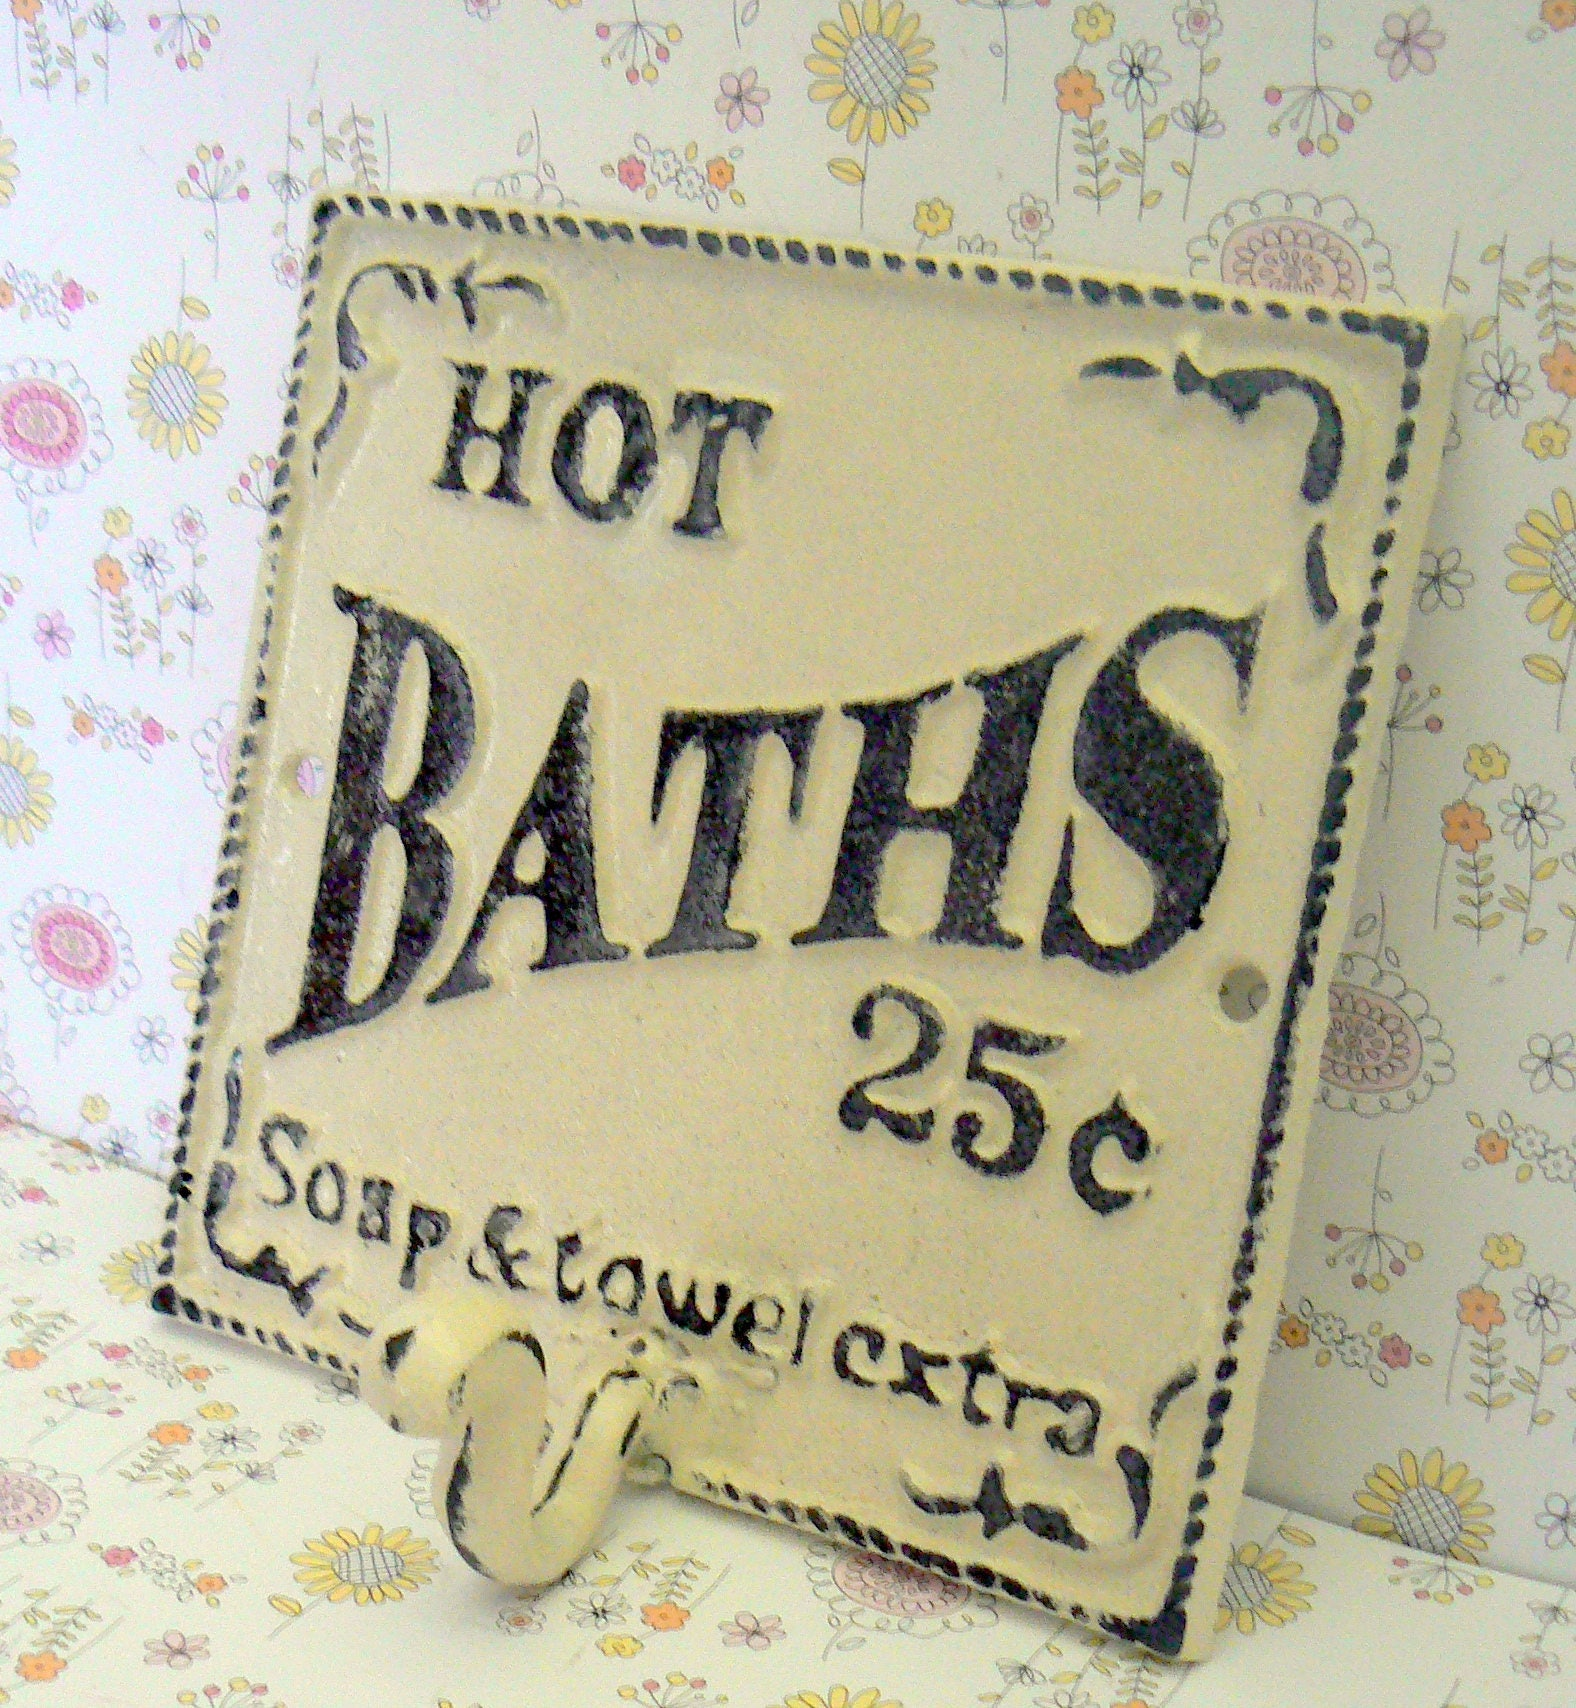 Hot Baths 25 Cents Soap Towels Extra Wall Hook Shabby Chic Off White ...